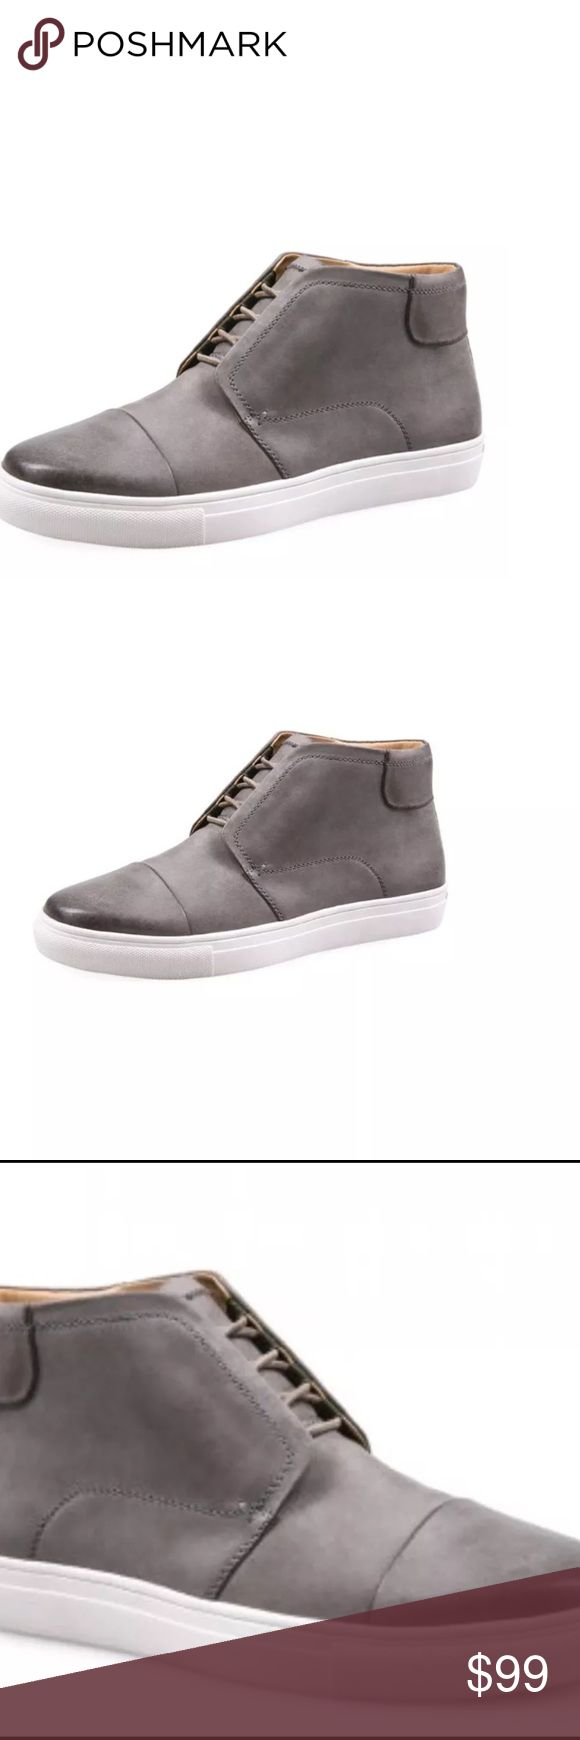 J shoe hunt Chukka sneaker Description: Cap-toe chukka sneaker  Leather Lace-up vamp Rubber outsole Material: Leather  Brand: J Shoes  Origin: Imported J shoes Shoes Sneakers